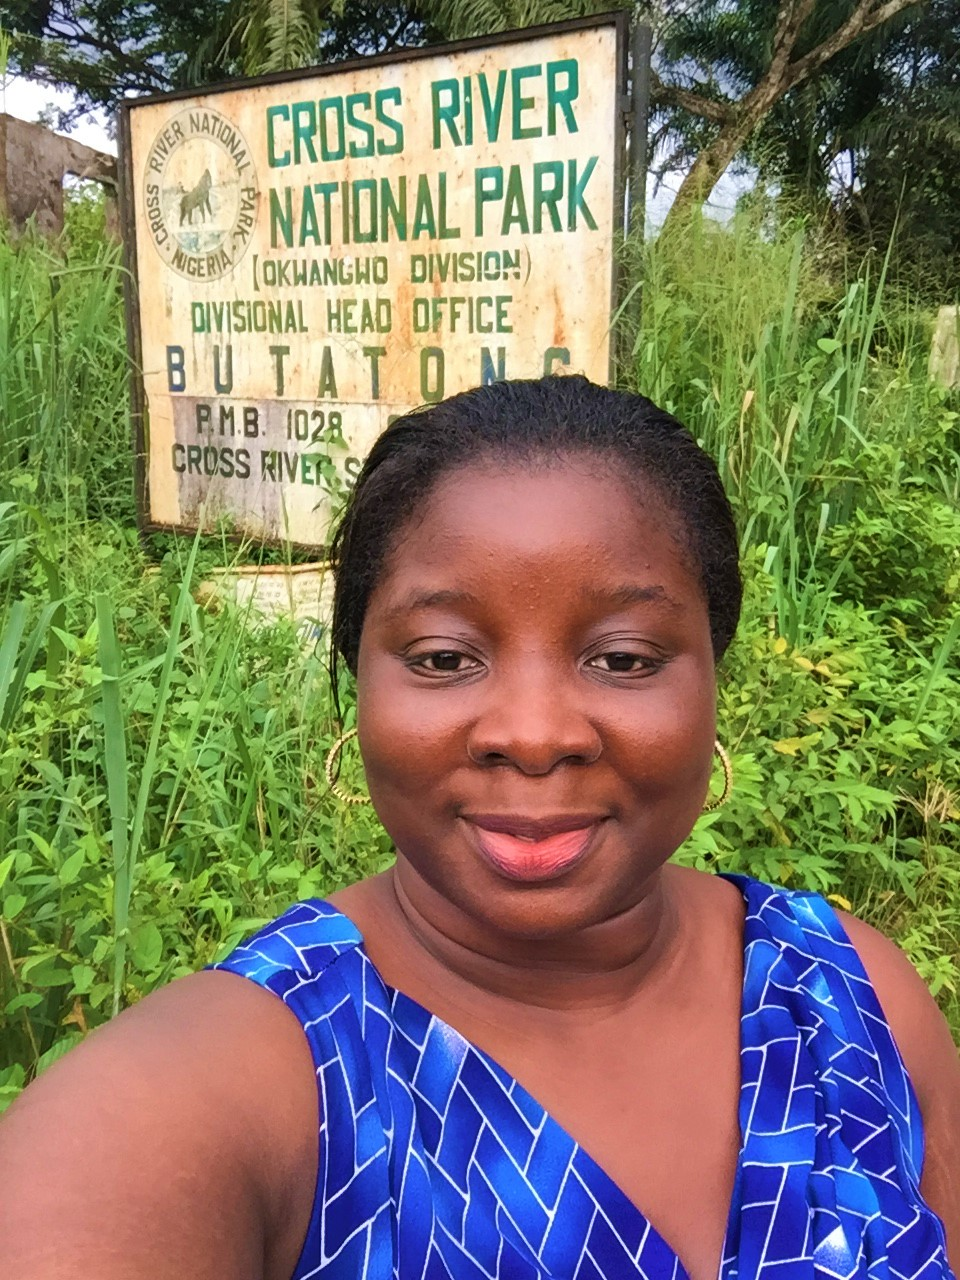 NATIONAL PARK, CROSS RIVER